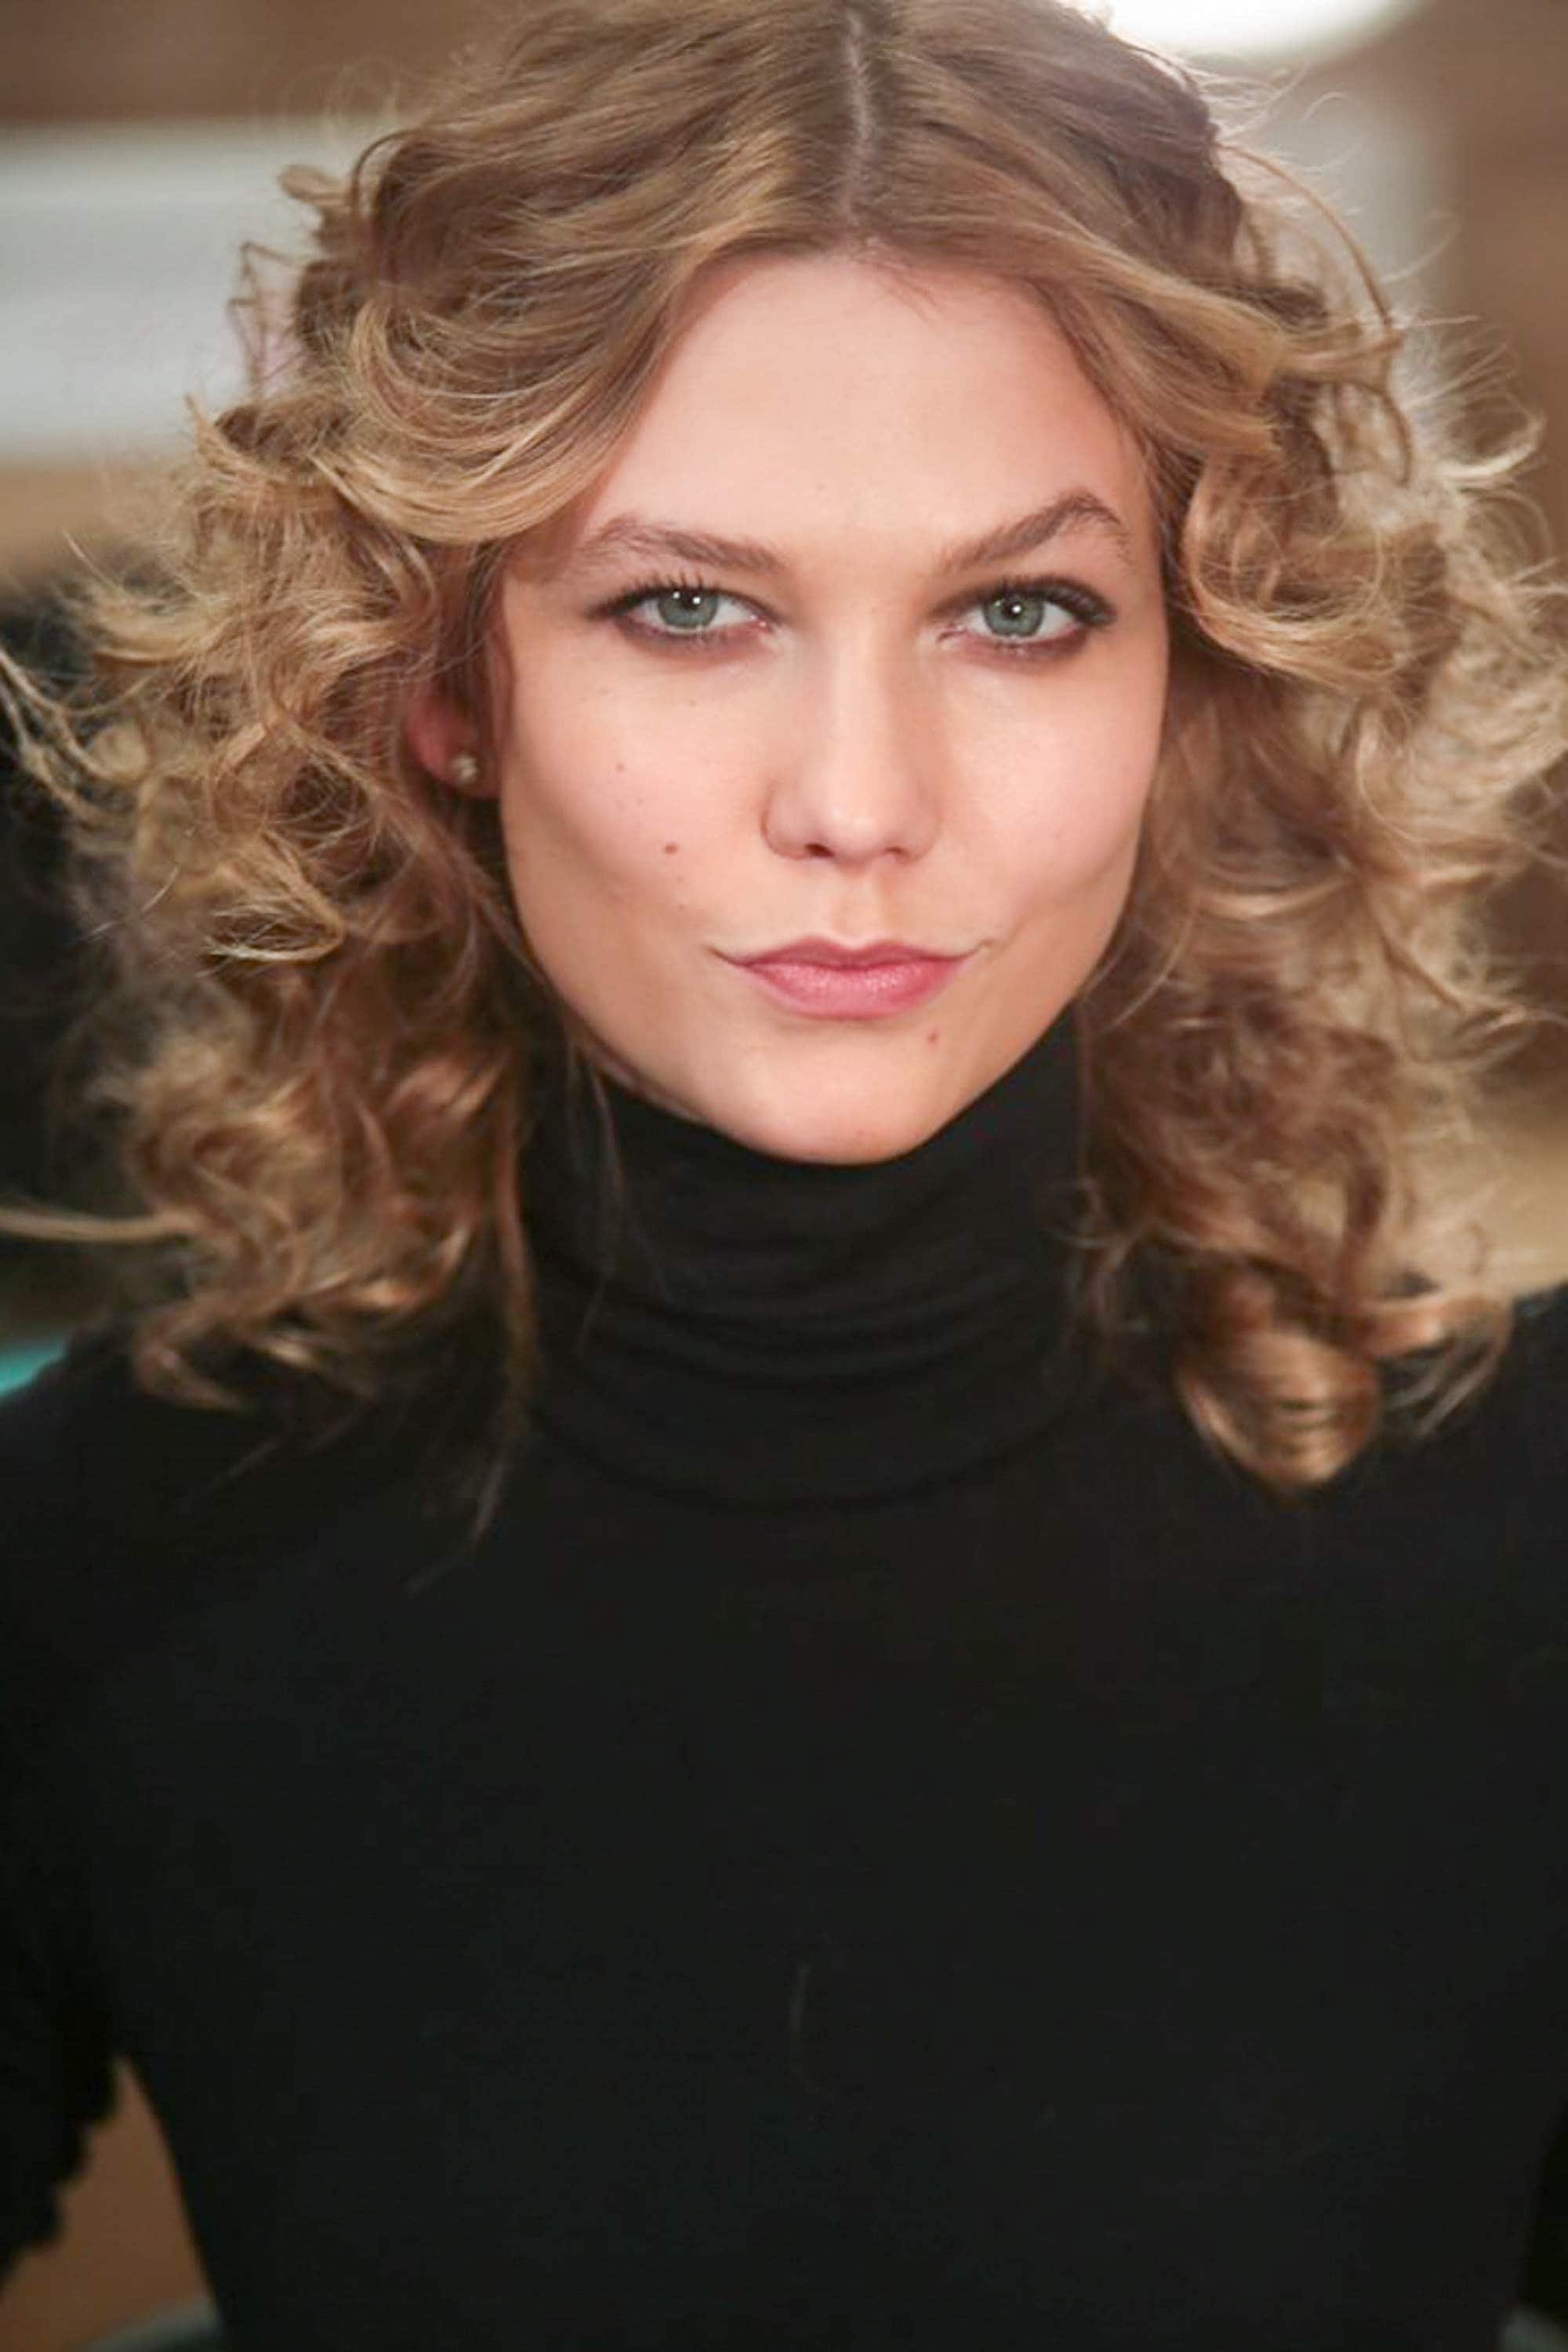 karlie kloss with spiral hairstyle, backstage at a fashion show